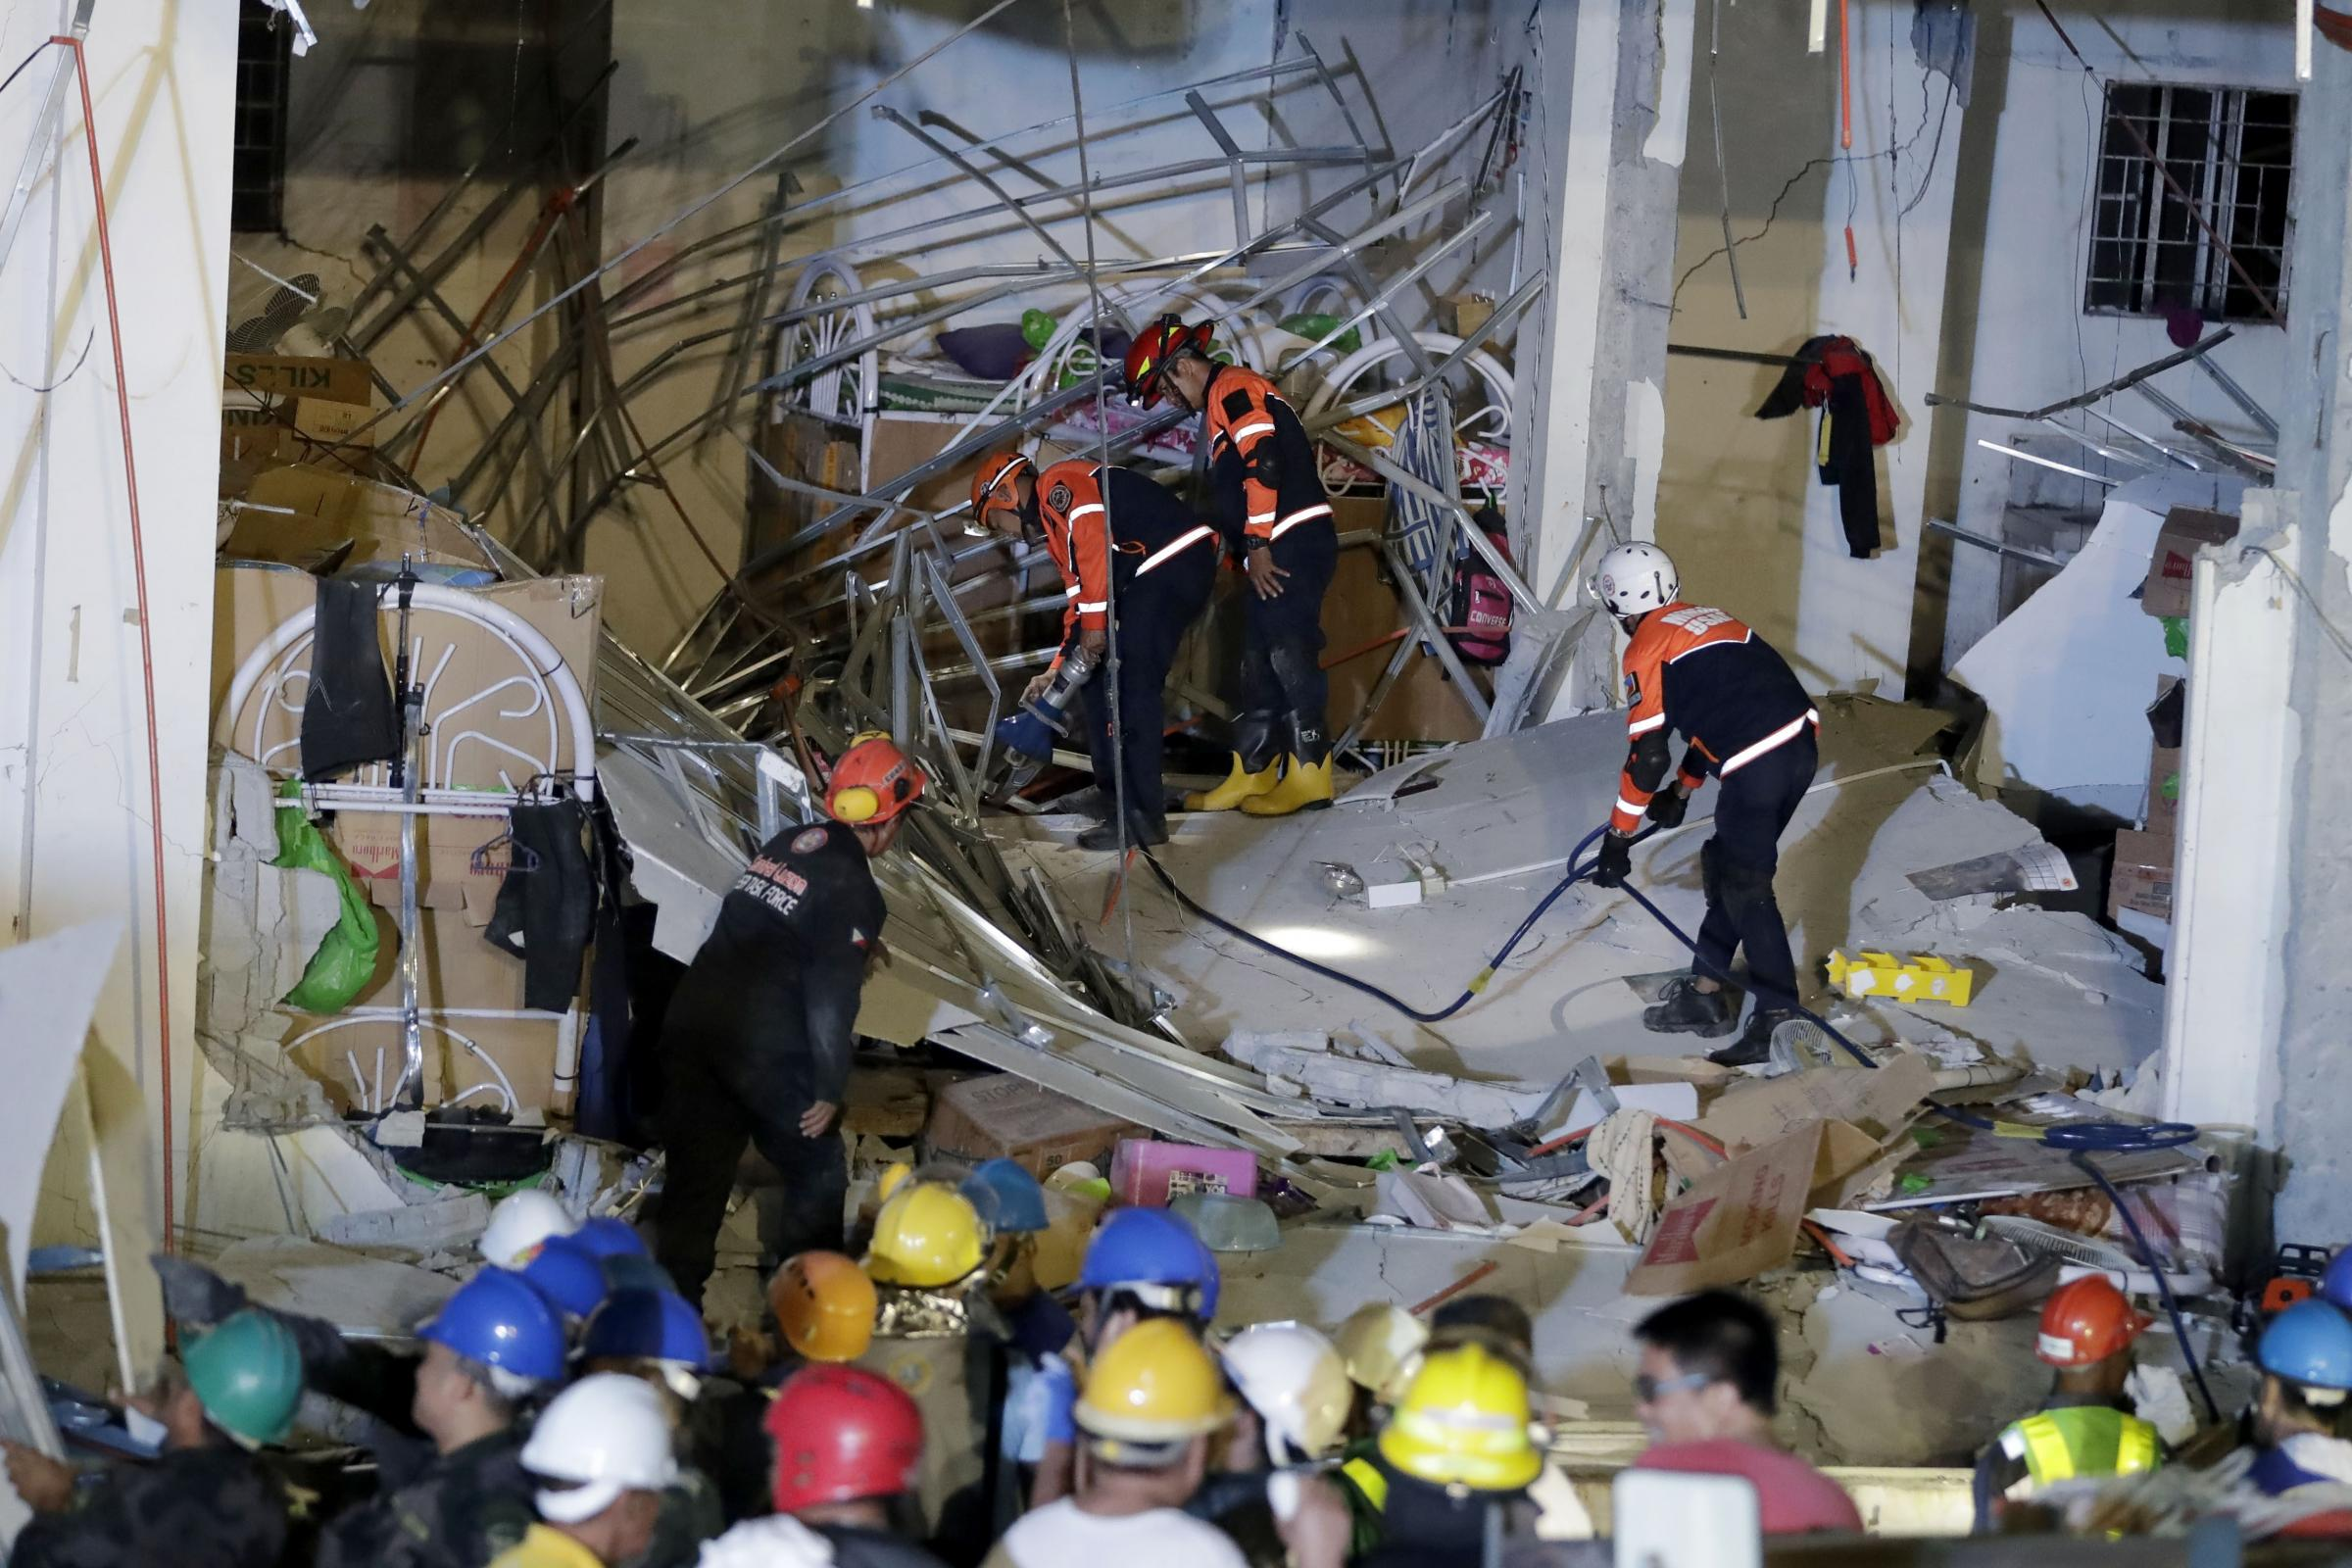 Rescuers continue to search for survivors following Monday's magnitude 6.1 earthquake